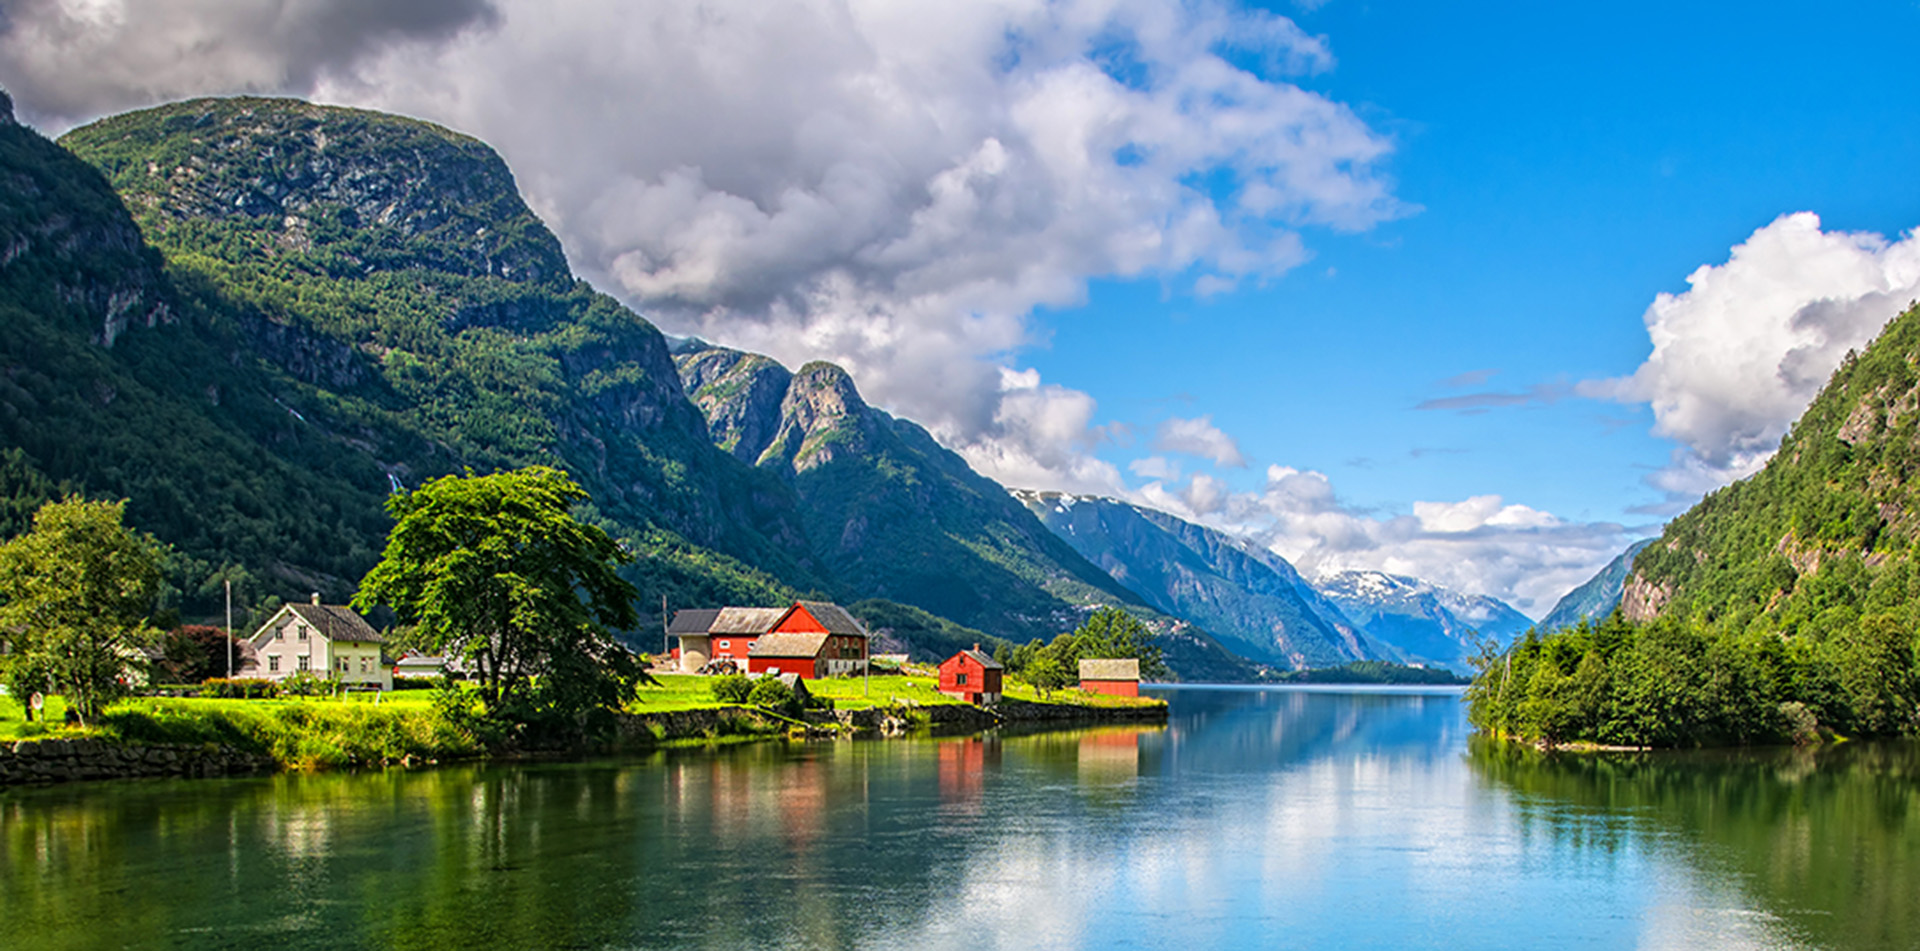 Fjord and mountains, Norway